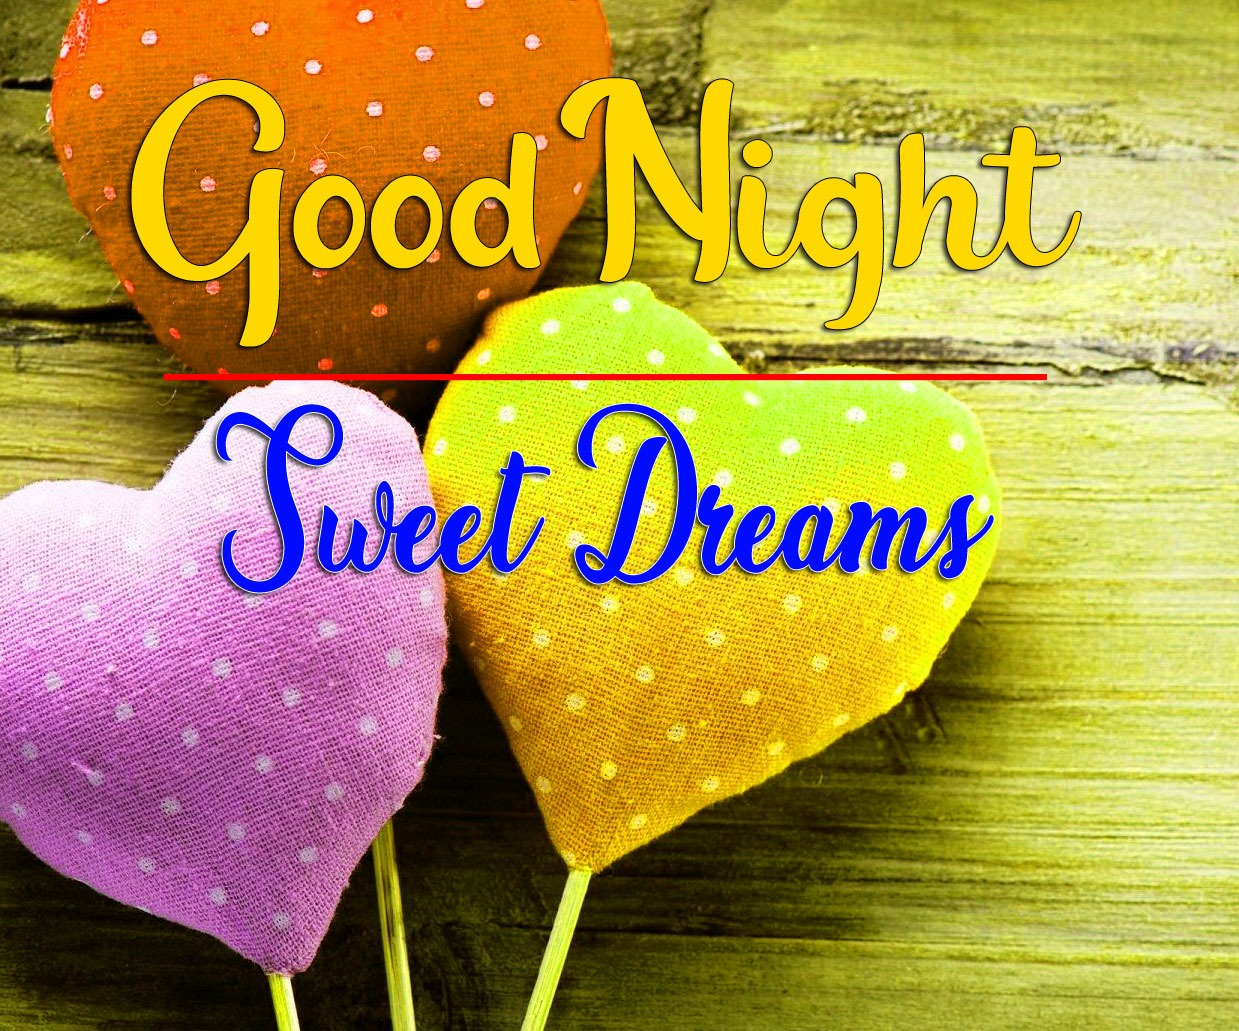 HD Good Night Pictures With Sweet Dream